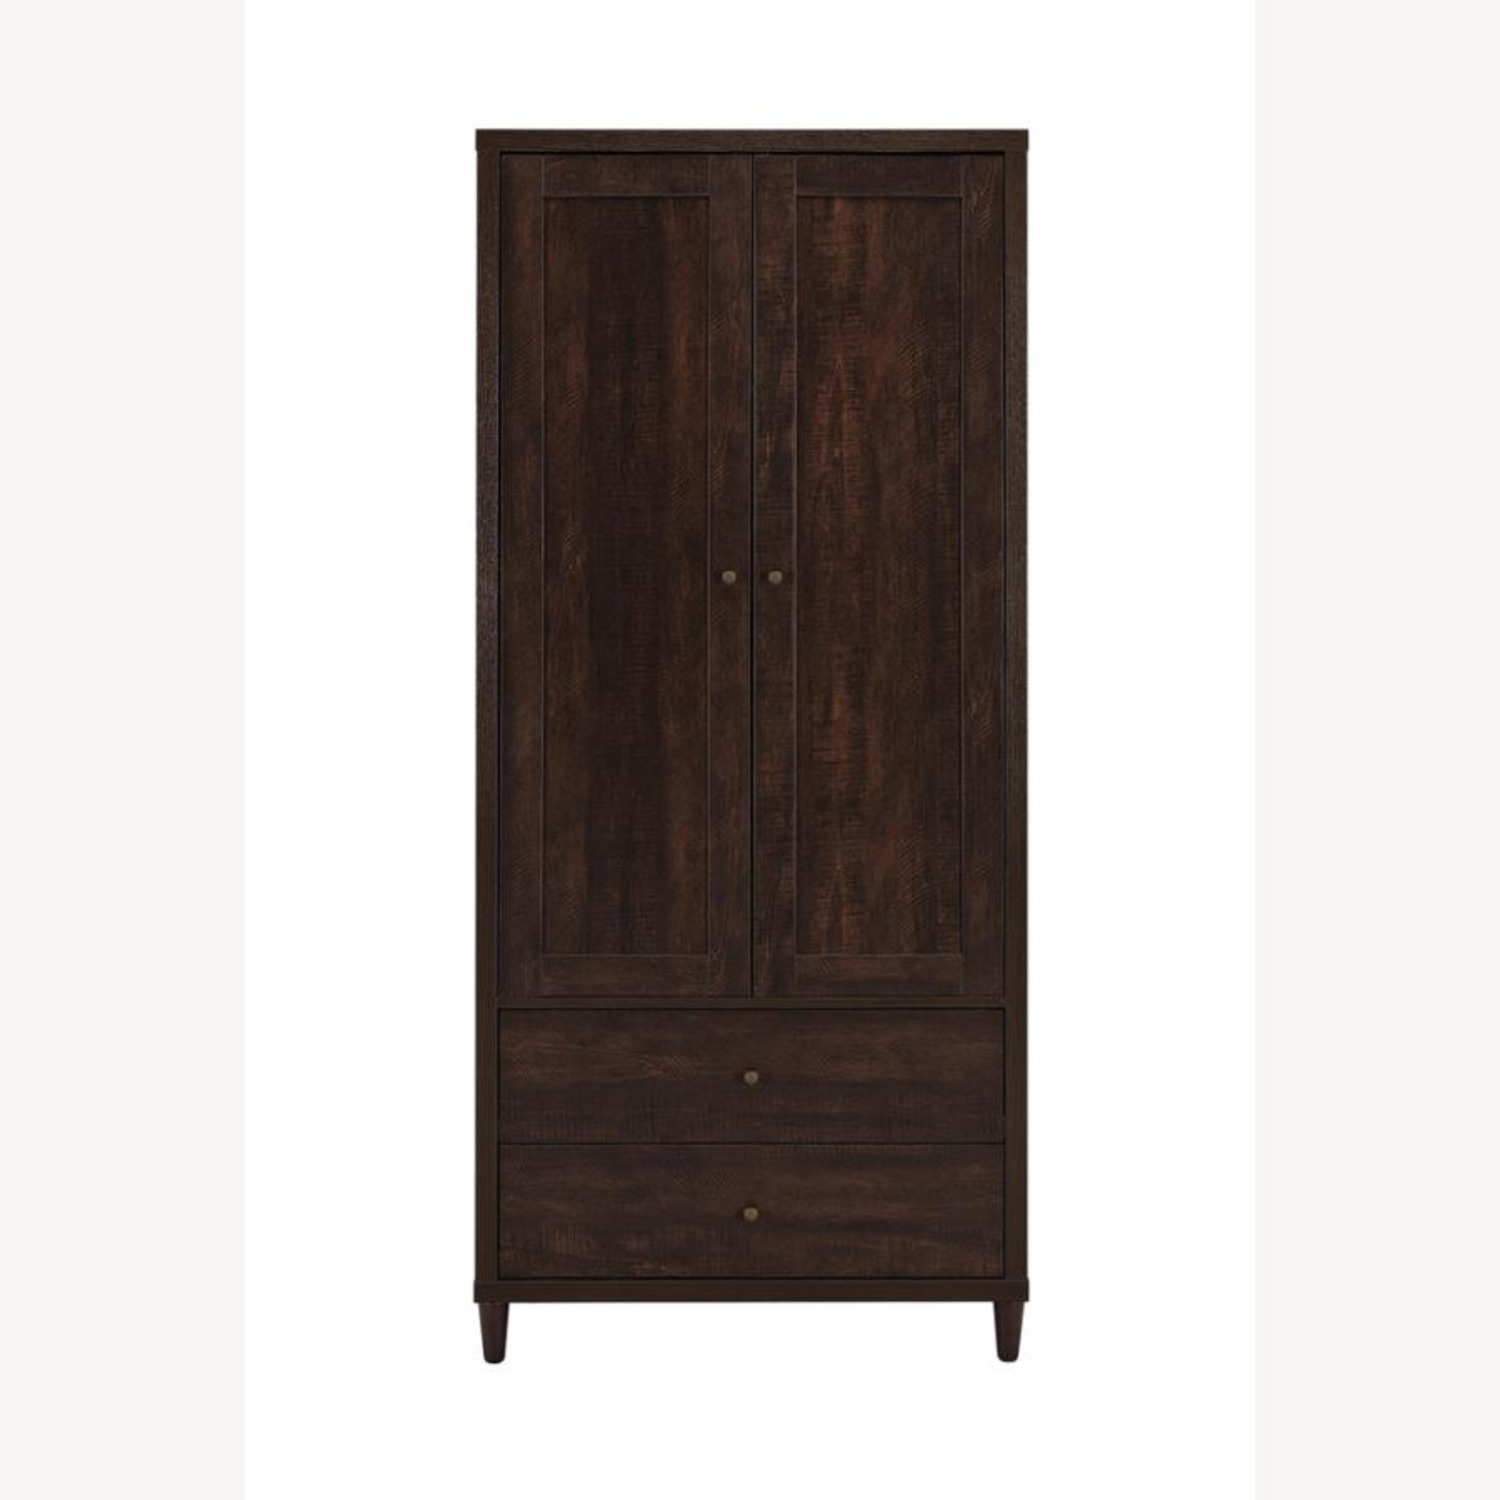 Accent Cabinet In Rich Rustic Tobacco Finish - image-1